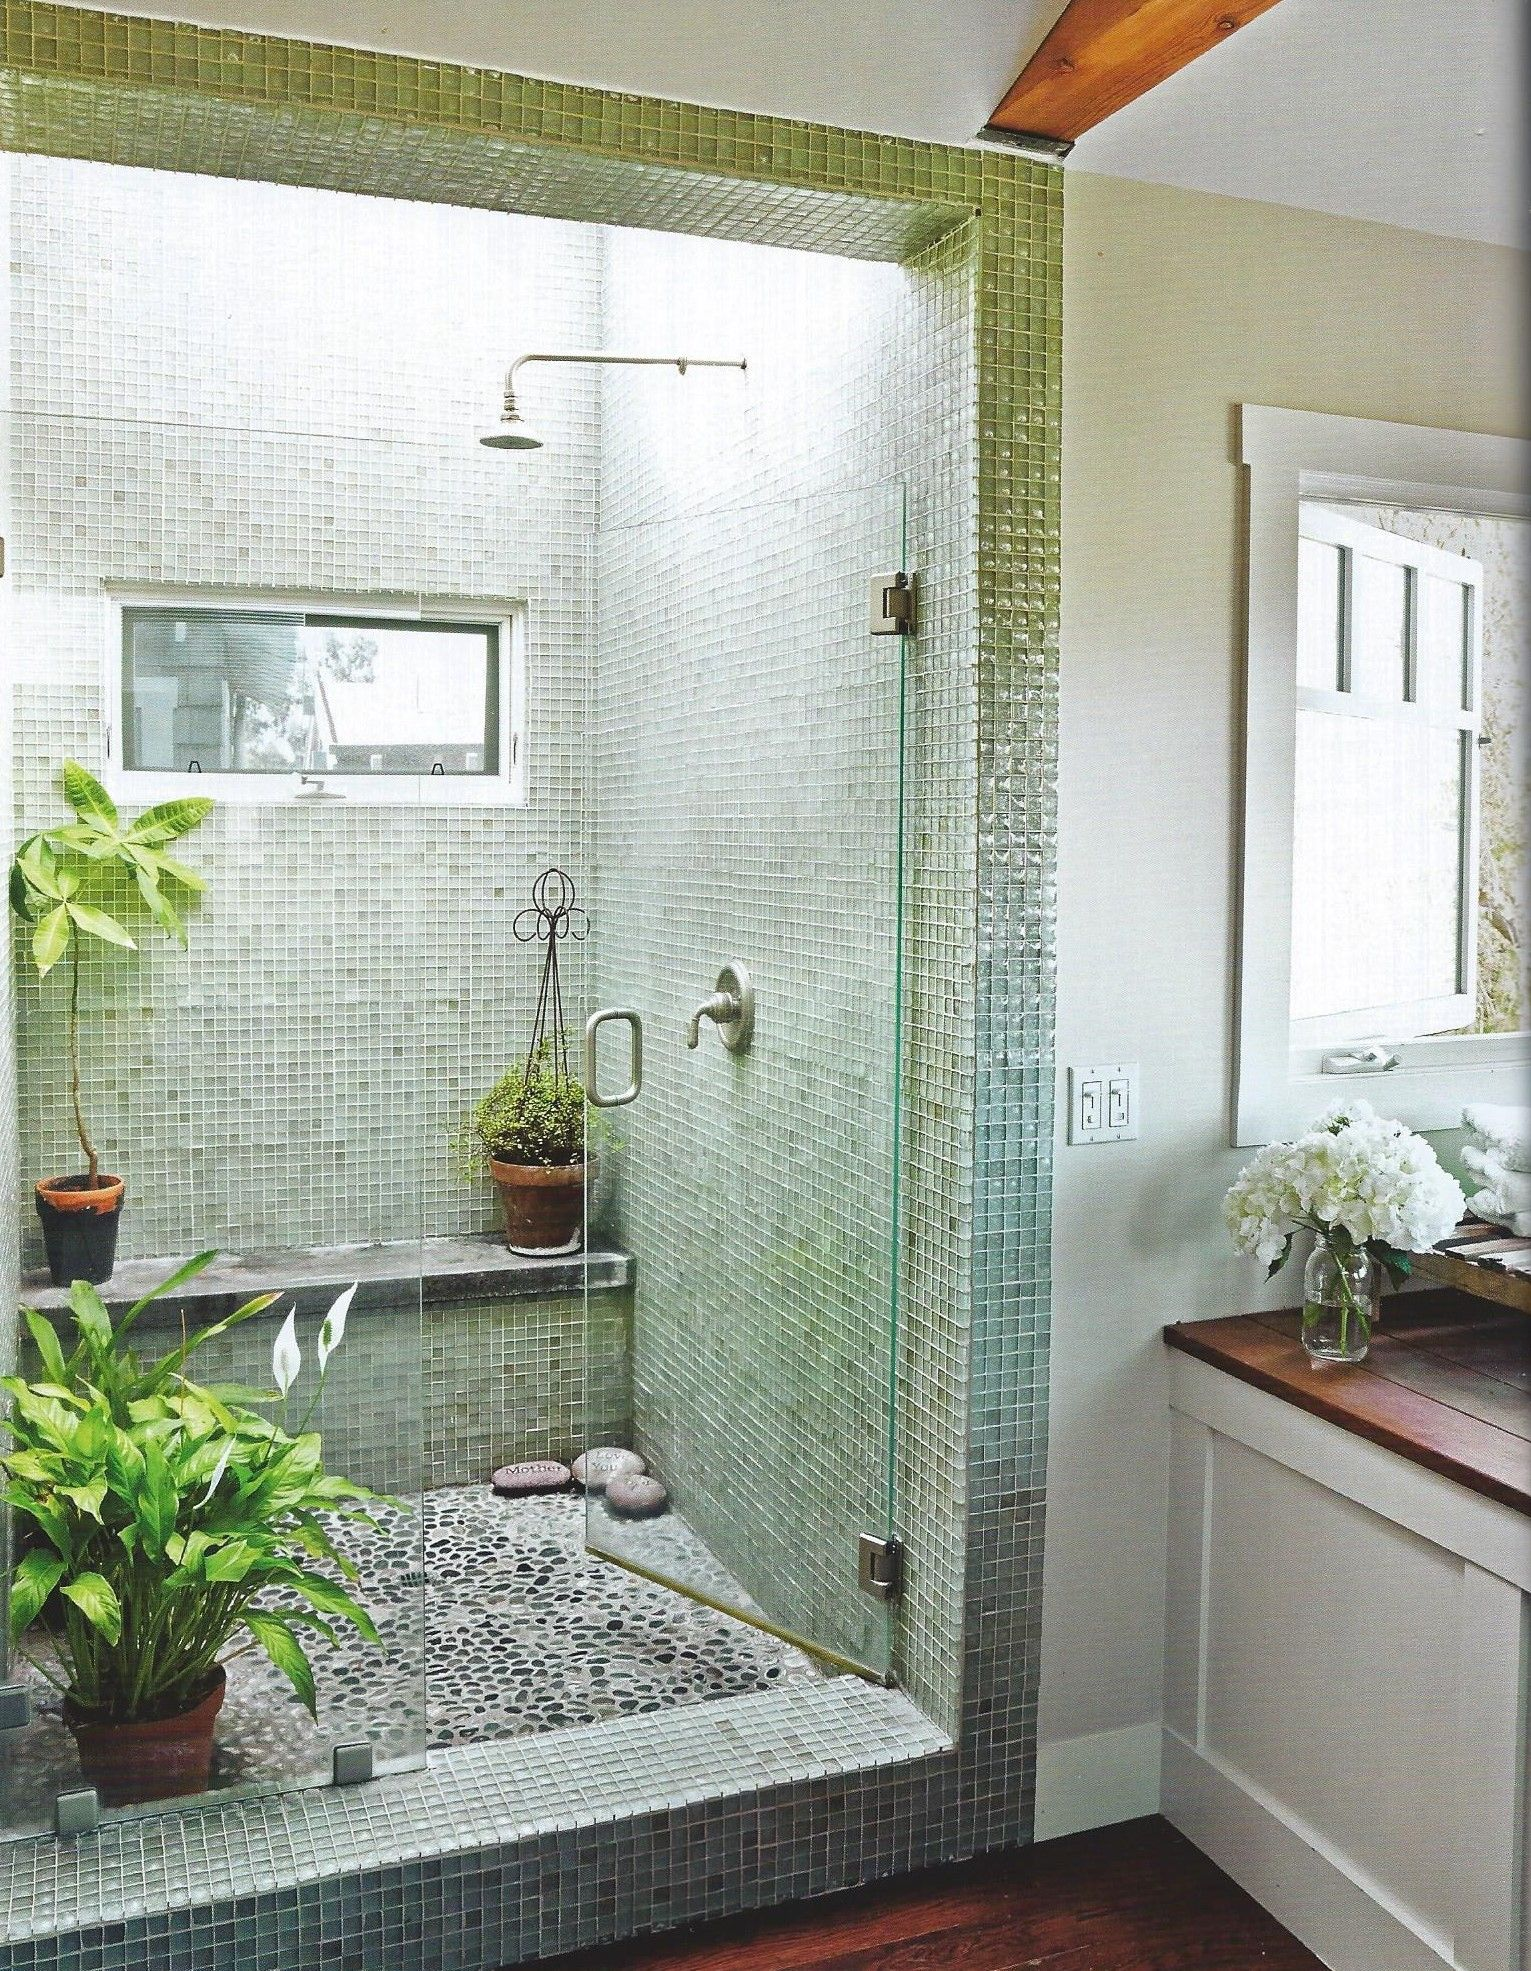 Apartment therapy shower skylight plants bathroom ideas pinterest skylight apartment Bathroom design apartment therapy